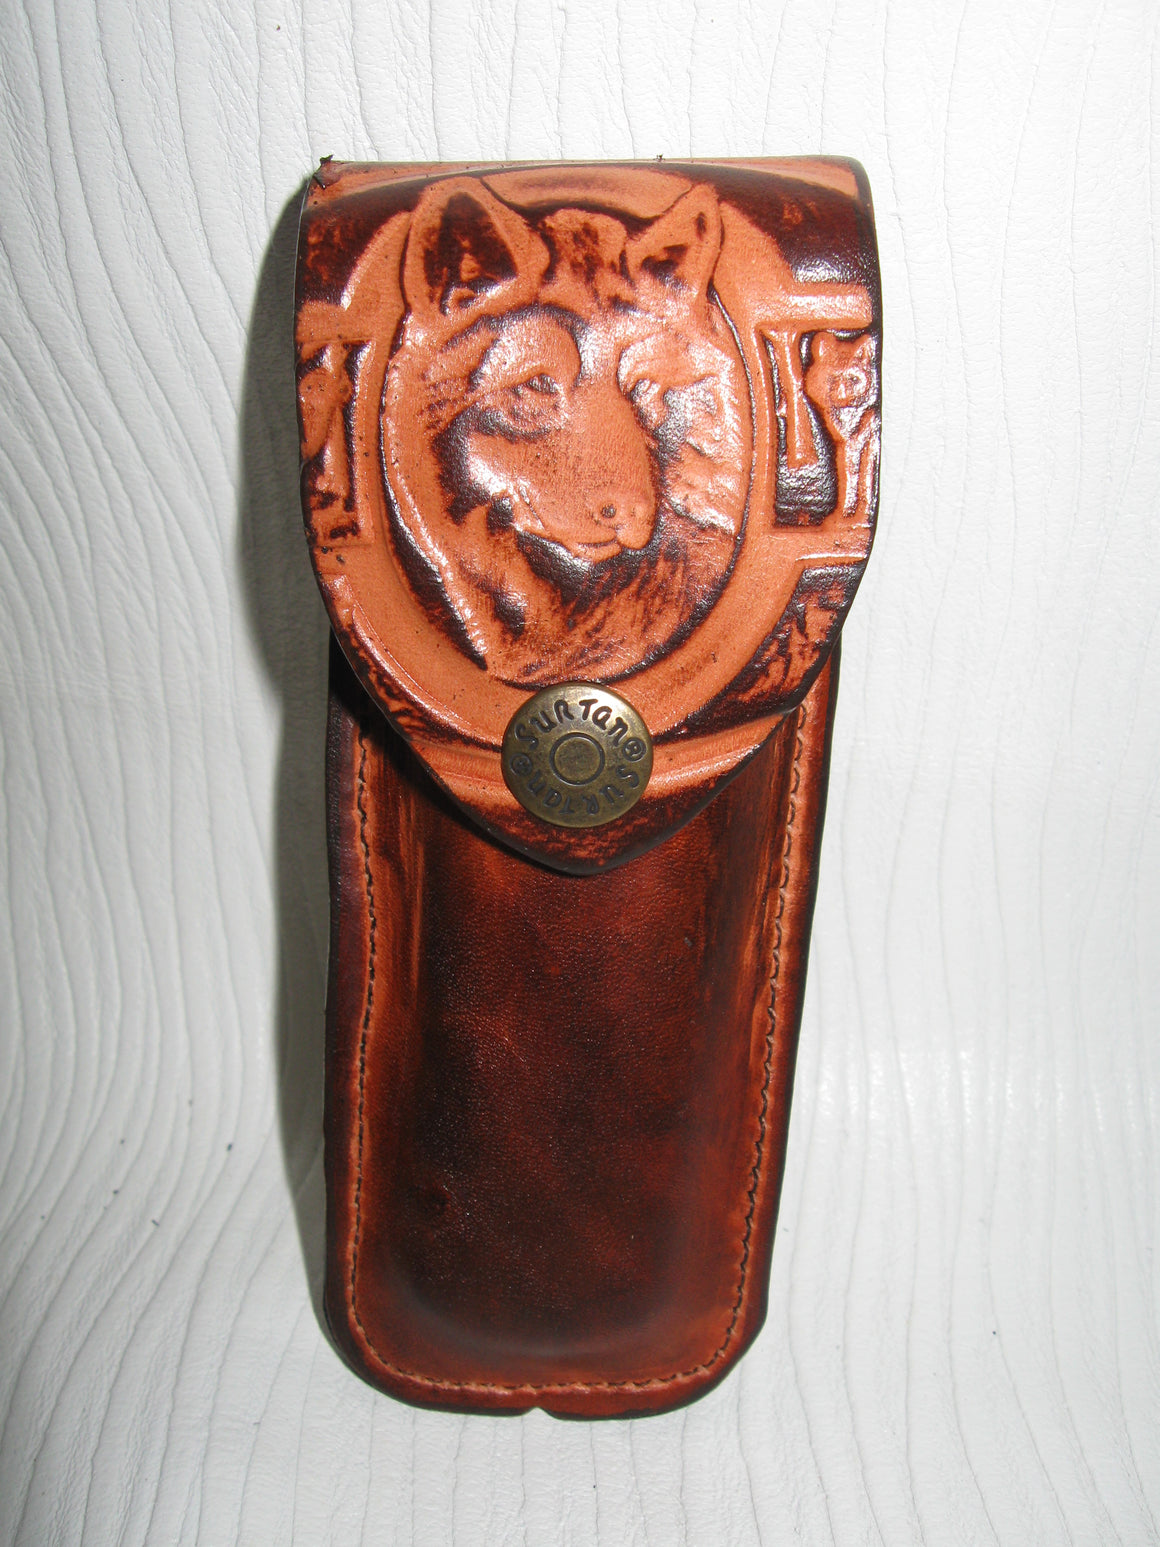 Folding Knife Embossed Cowhide Leather Knife Sheath - Sur Tan Mfg. Co.